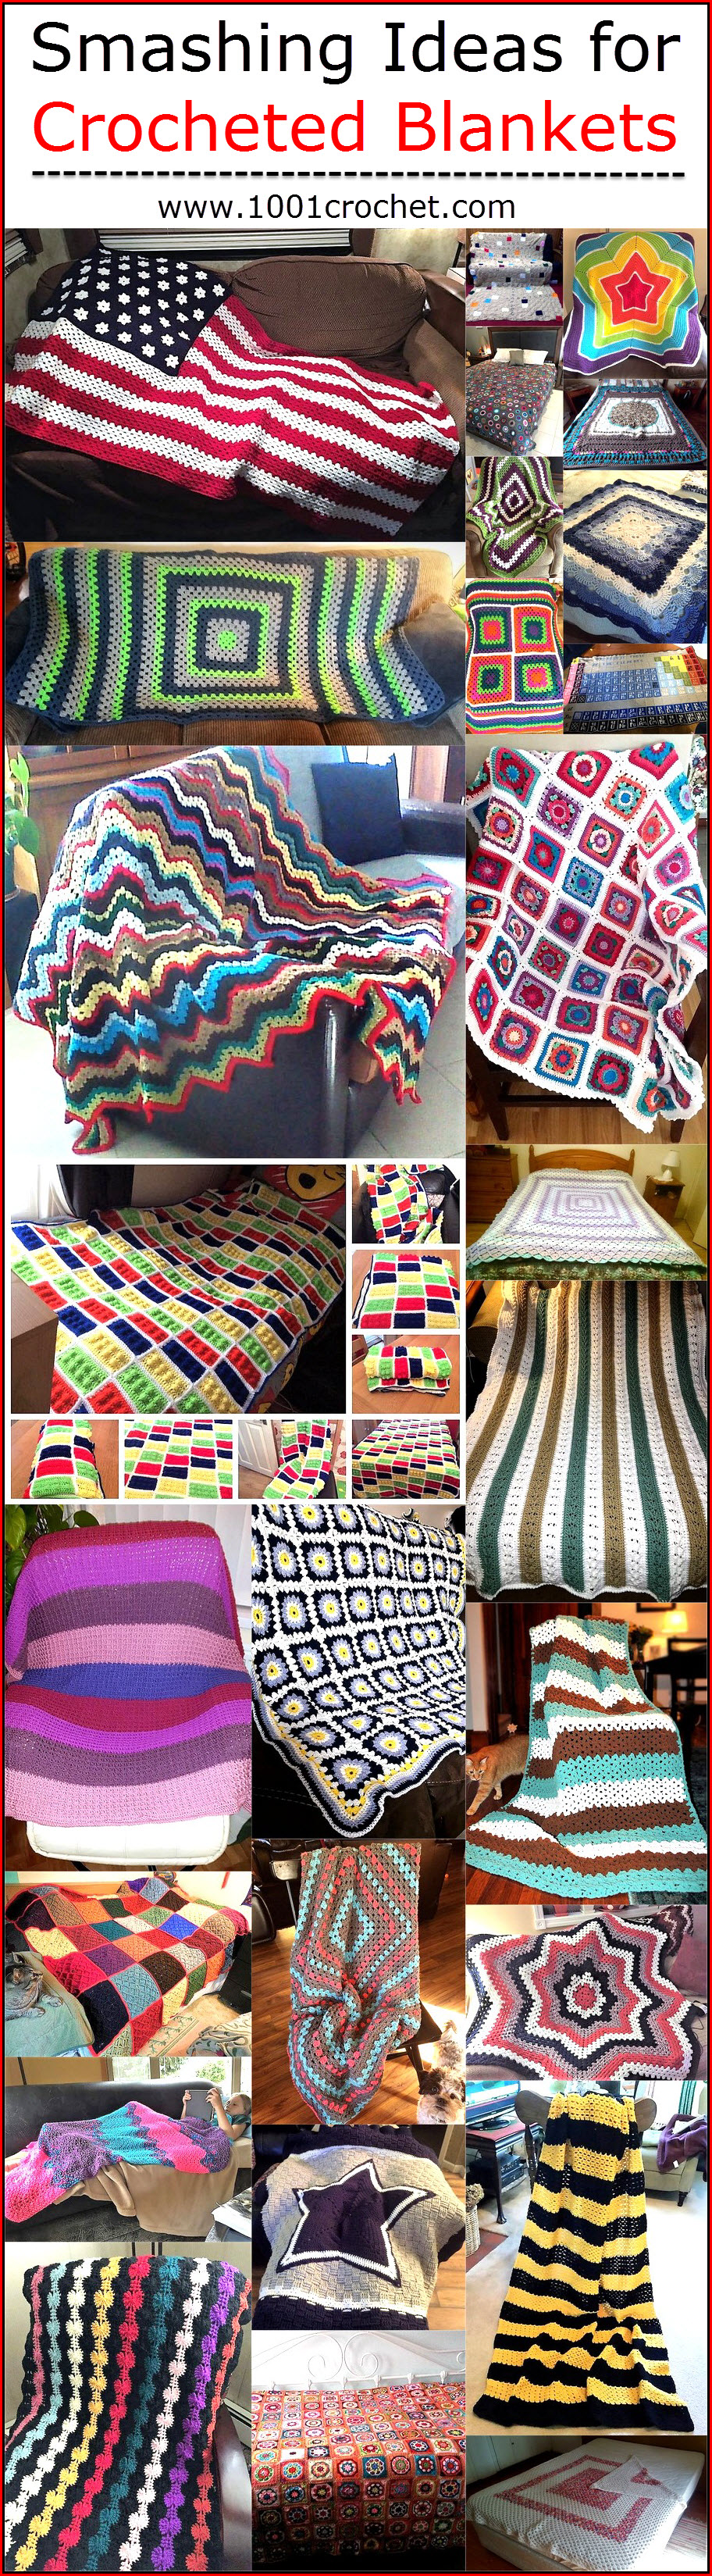 smashing-ideas-for-crocheted-blankets